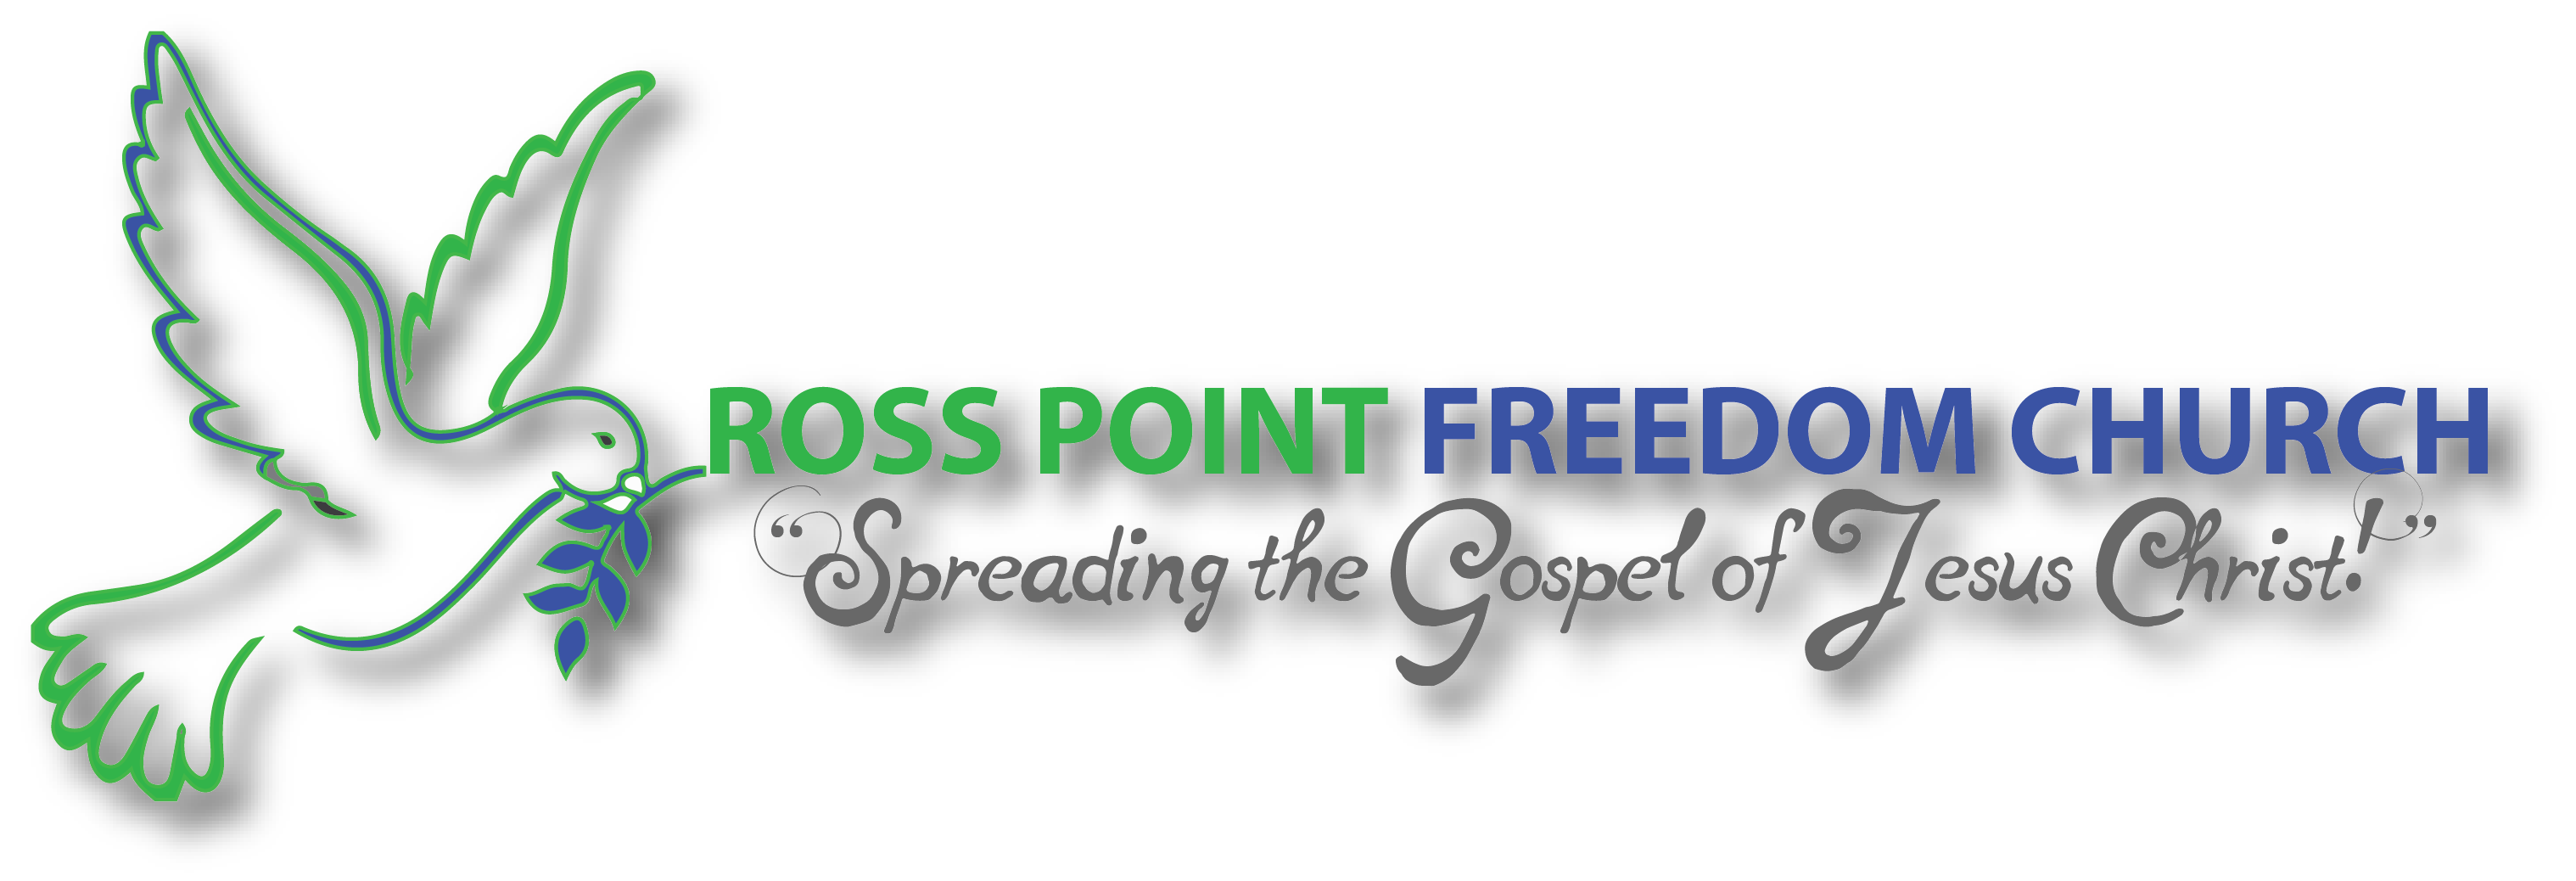 Ross Point Freedom Church